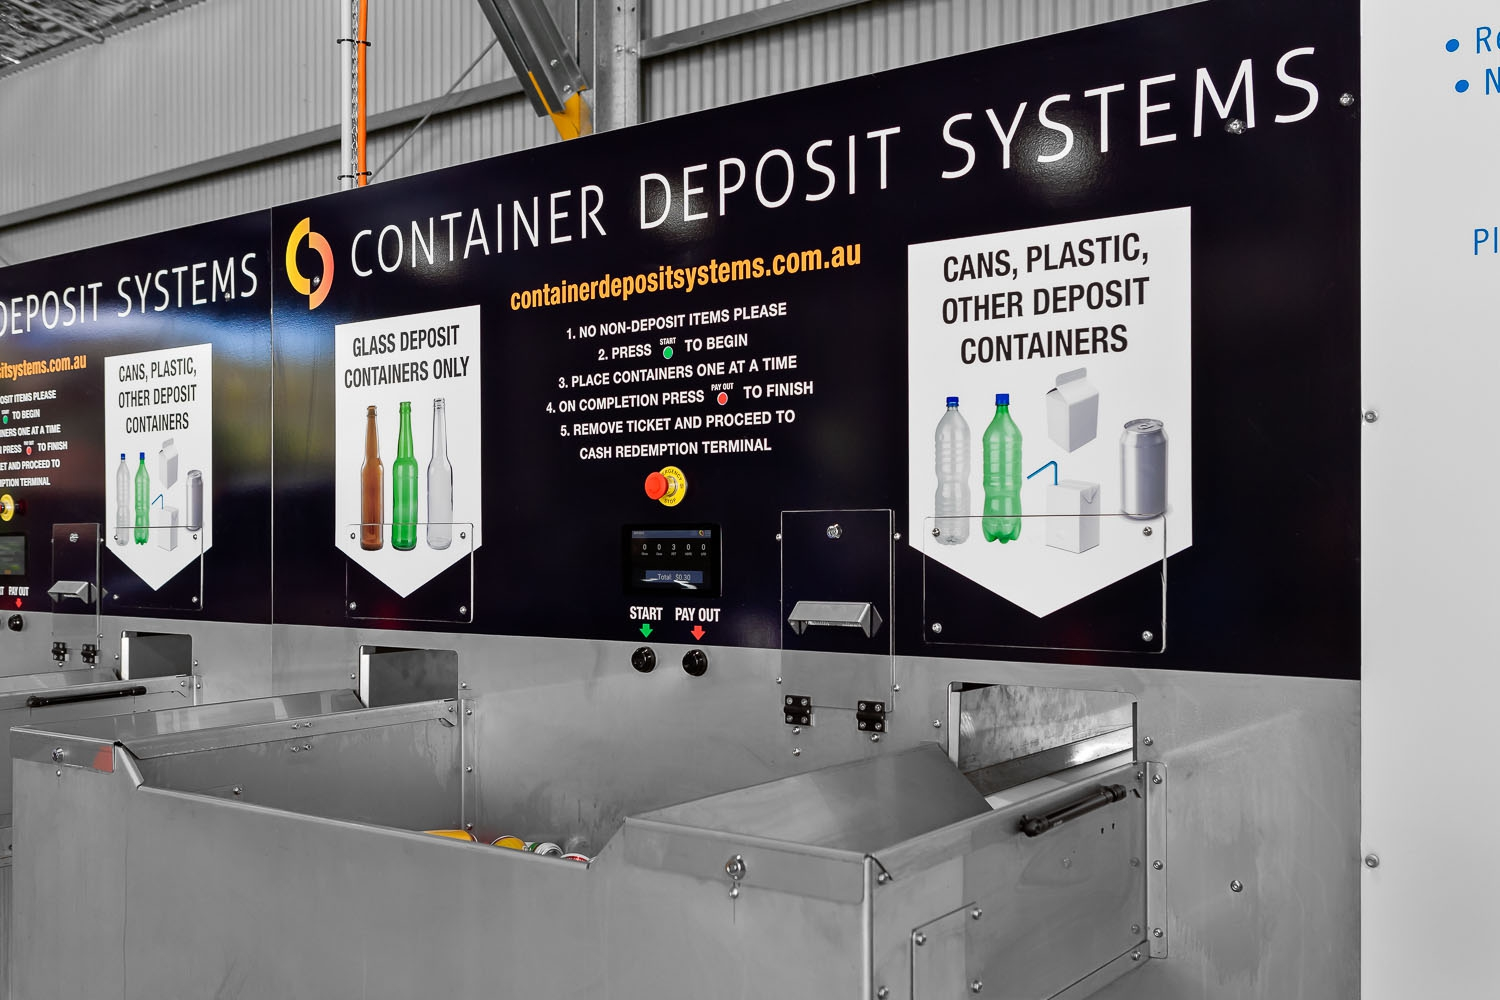 container deposit systems machinery.jpg